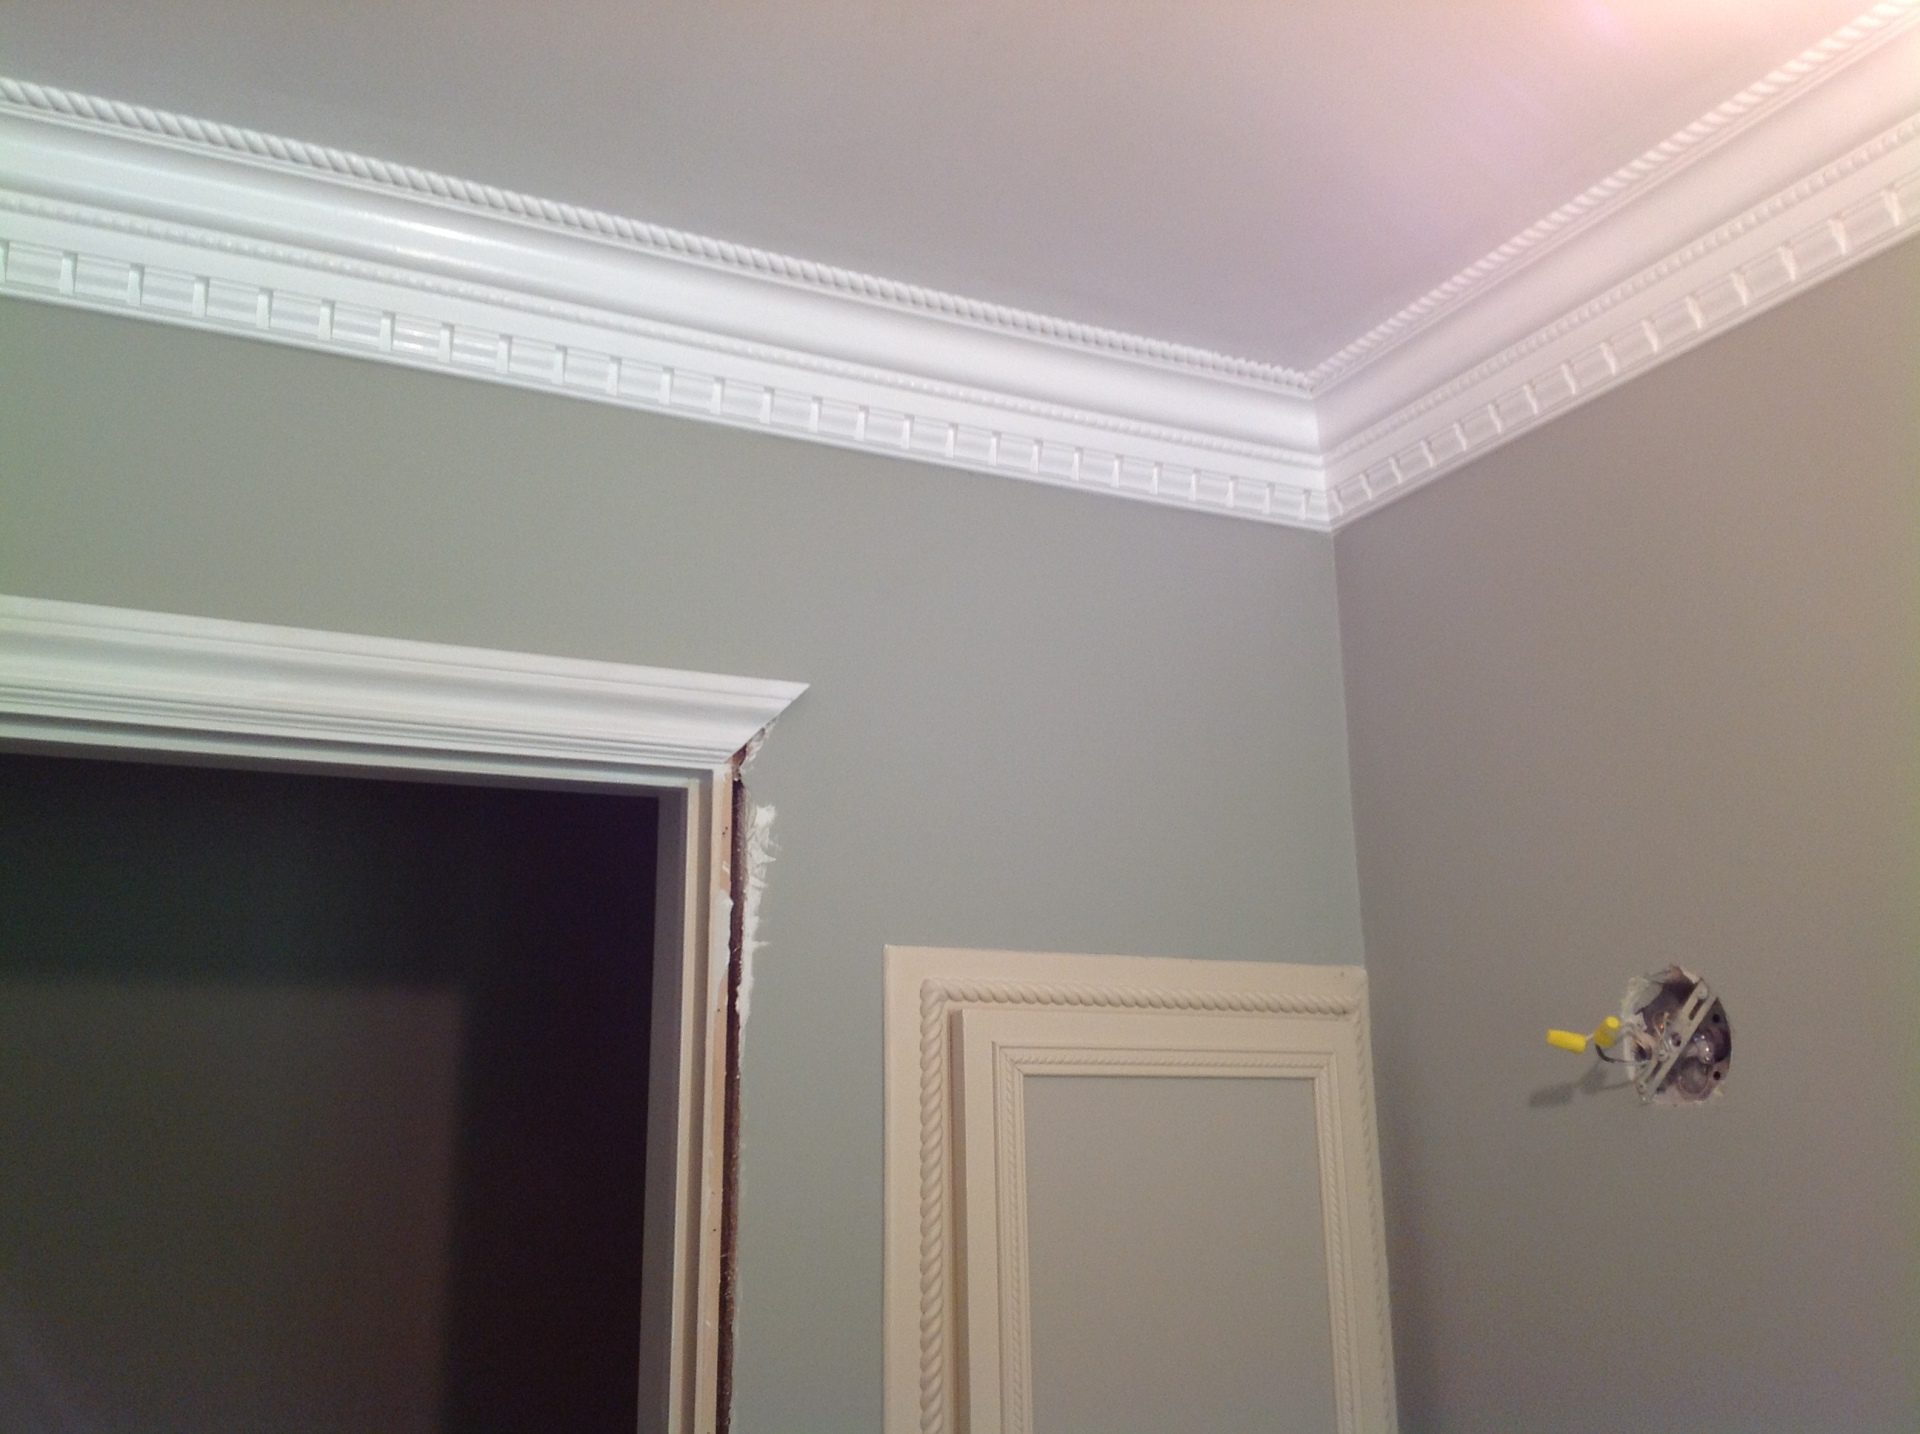 Three piece crown molding painted white